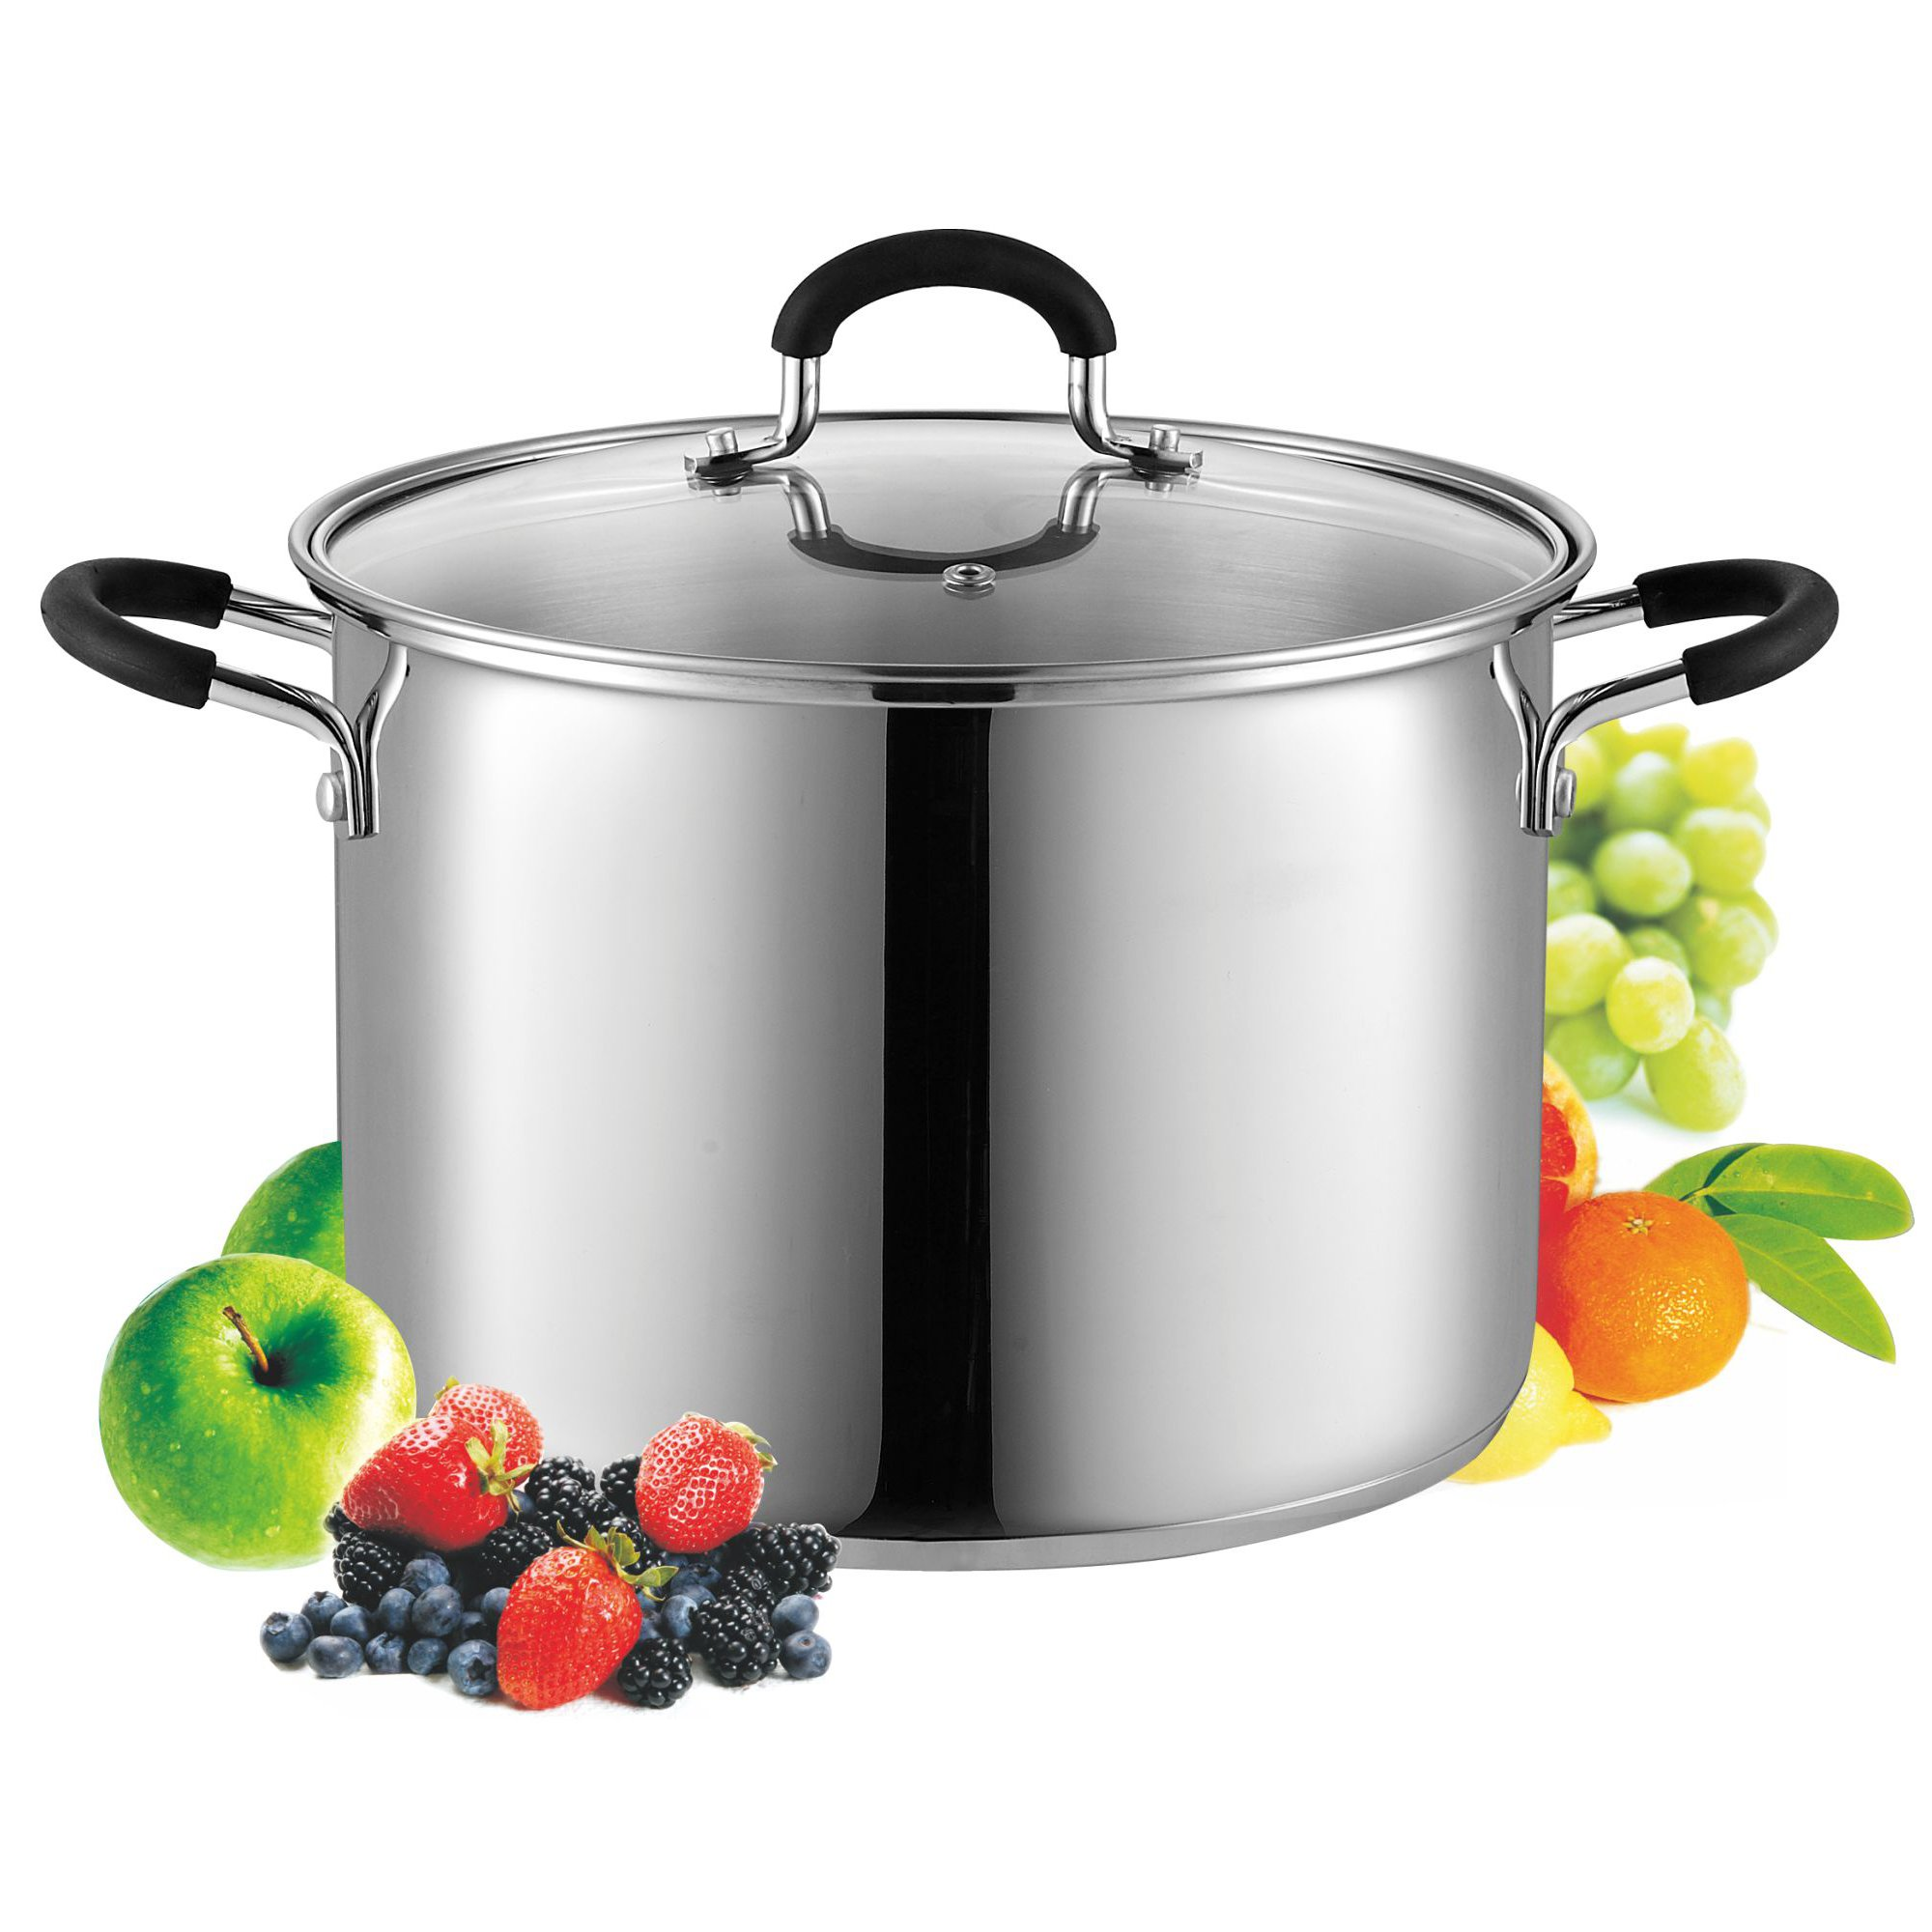 Cook N Home 8 Quart Stainless Steel Stockpot Saucepot with Lid by Cook N Home (Image #1)